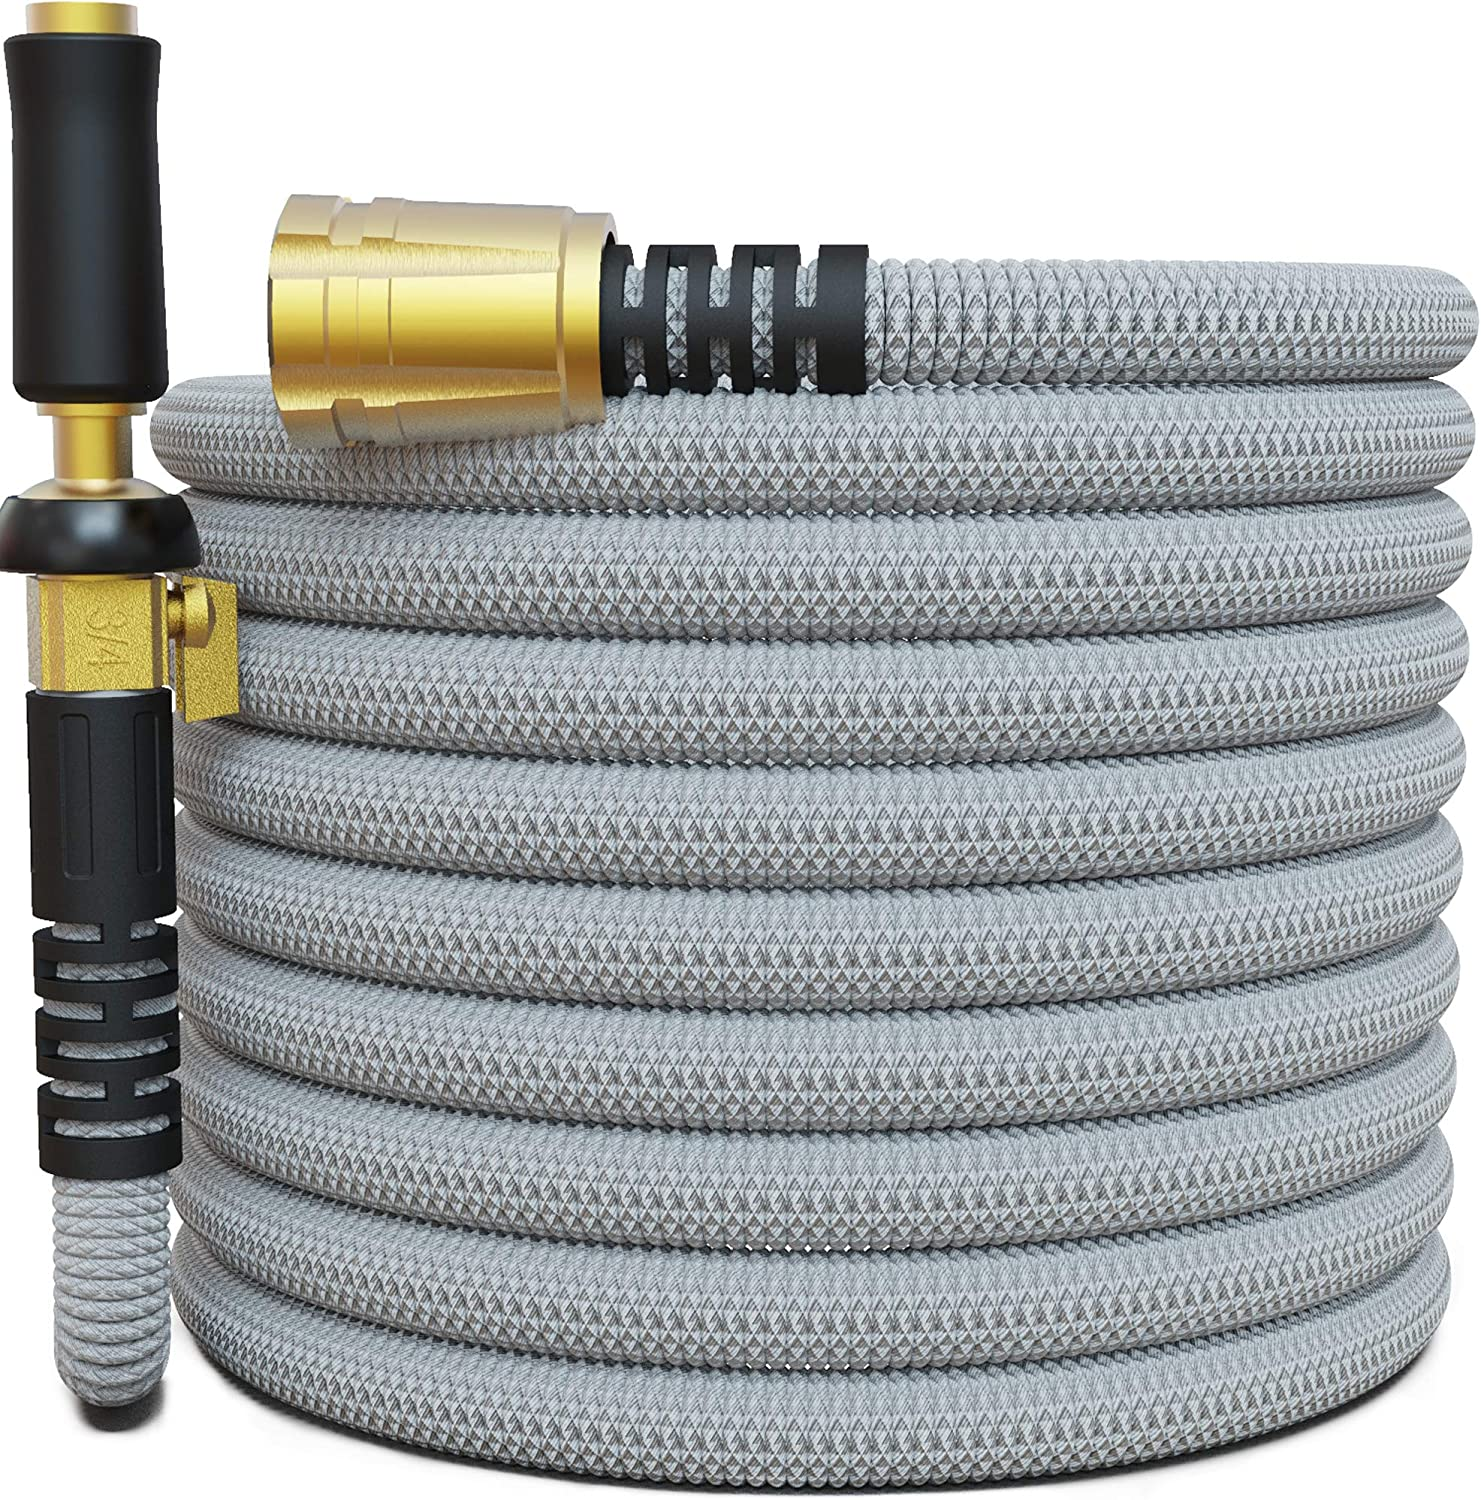 "TITAN 15FT Garden Hose - All New Expandable Water Hose with Triple Latex Core 3/4"" Easy Removal Solid Brass Fittings Expanding Extra Strength Fabric Flexible Hose with Jet Nozzle and Washers (G)"